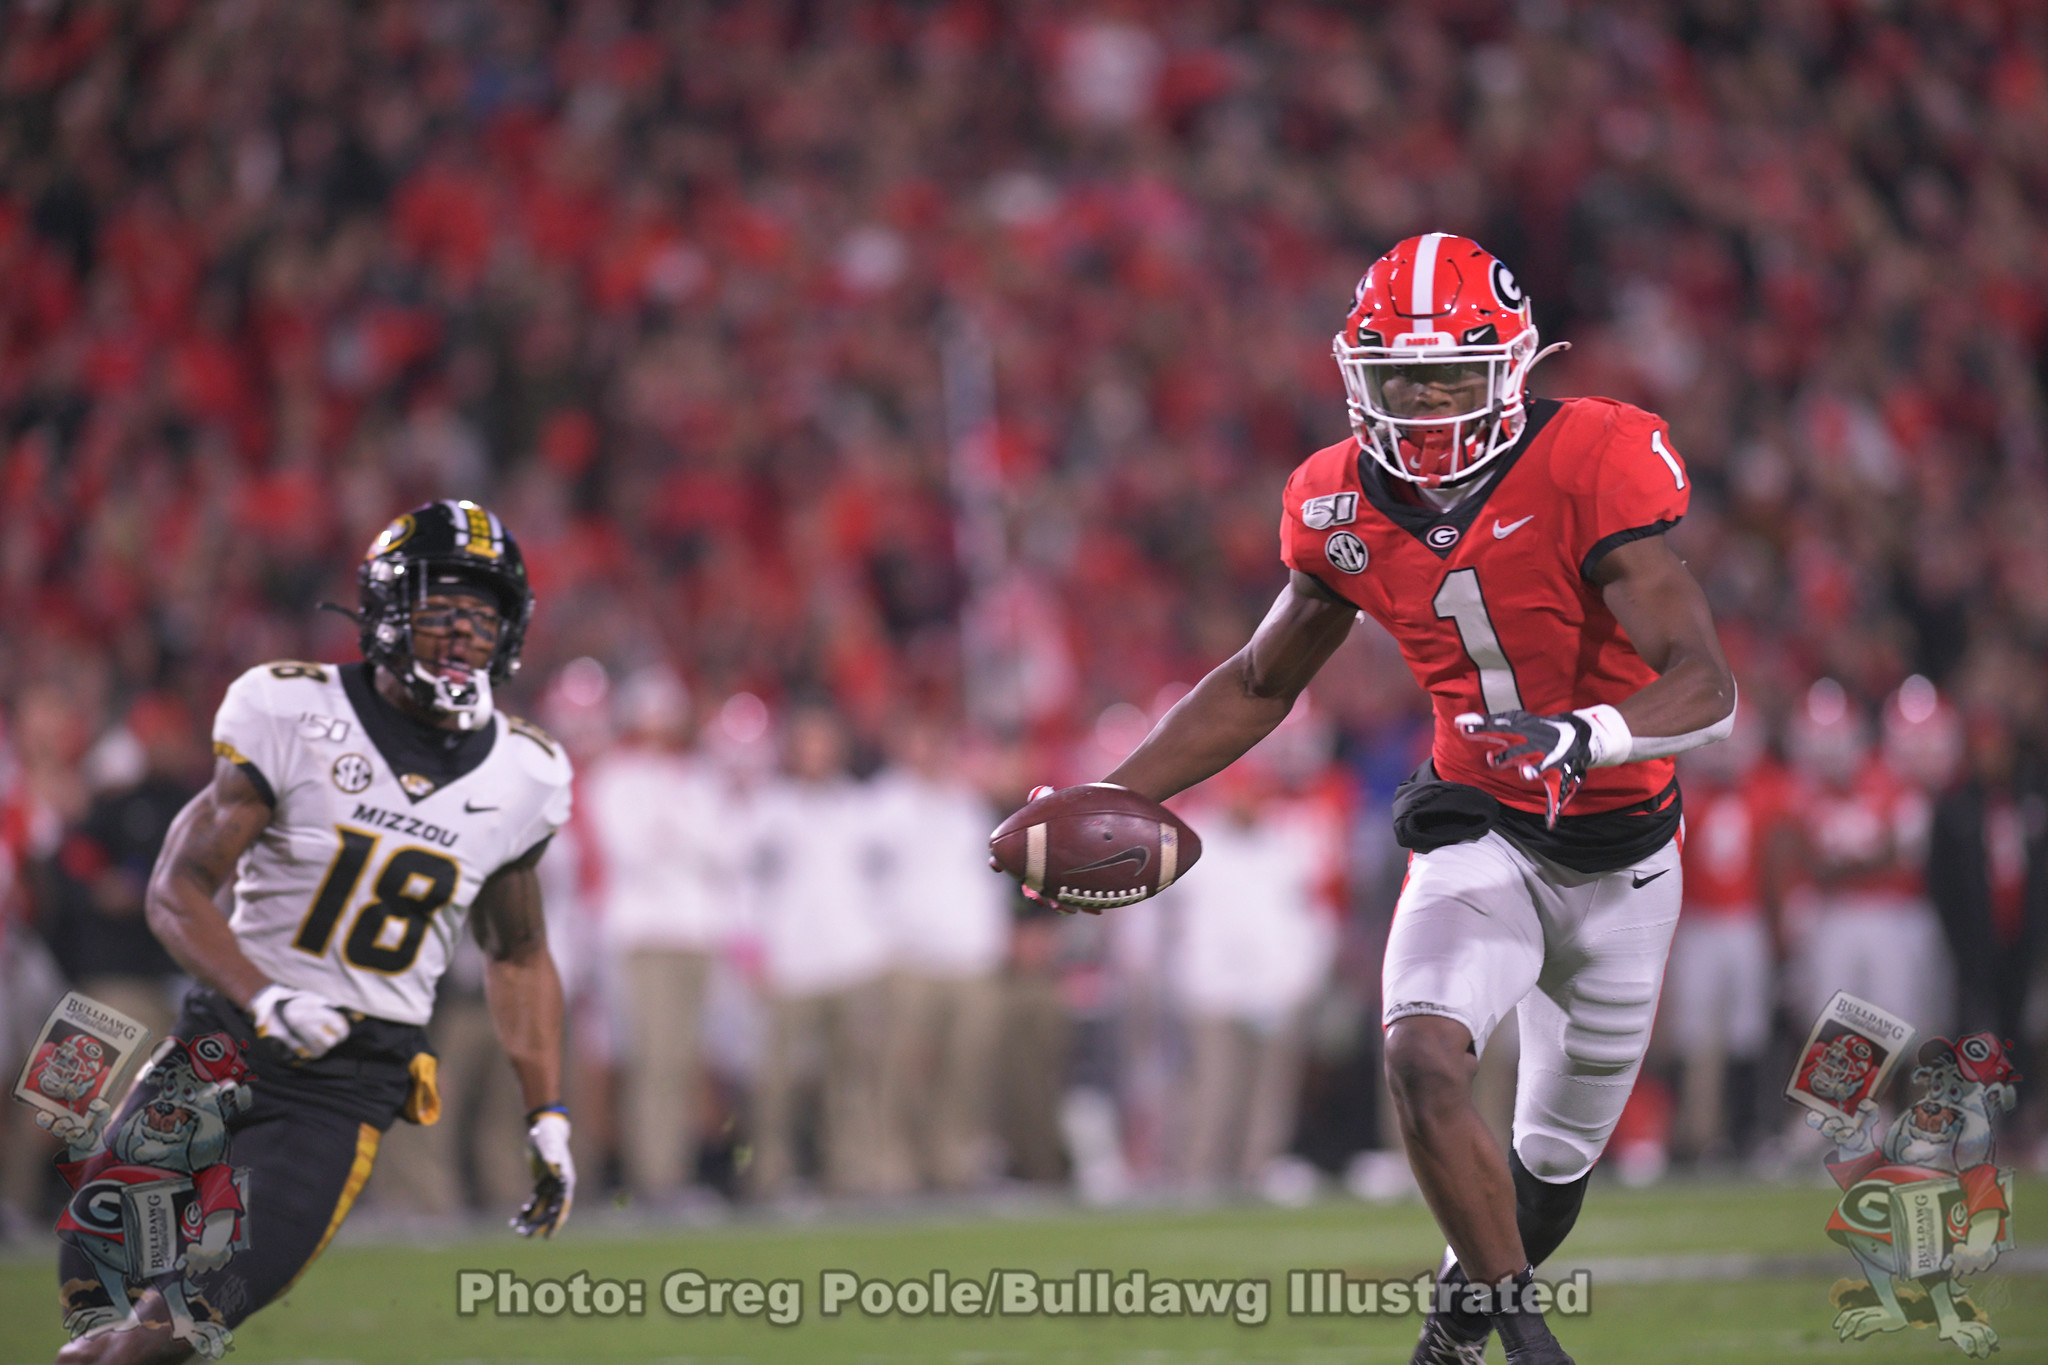 George Pickens (1) - Georgia vs. Missouri 2019 - November 09, 2019 - First Quarter